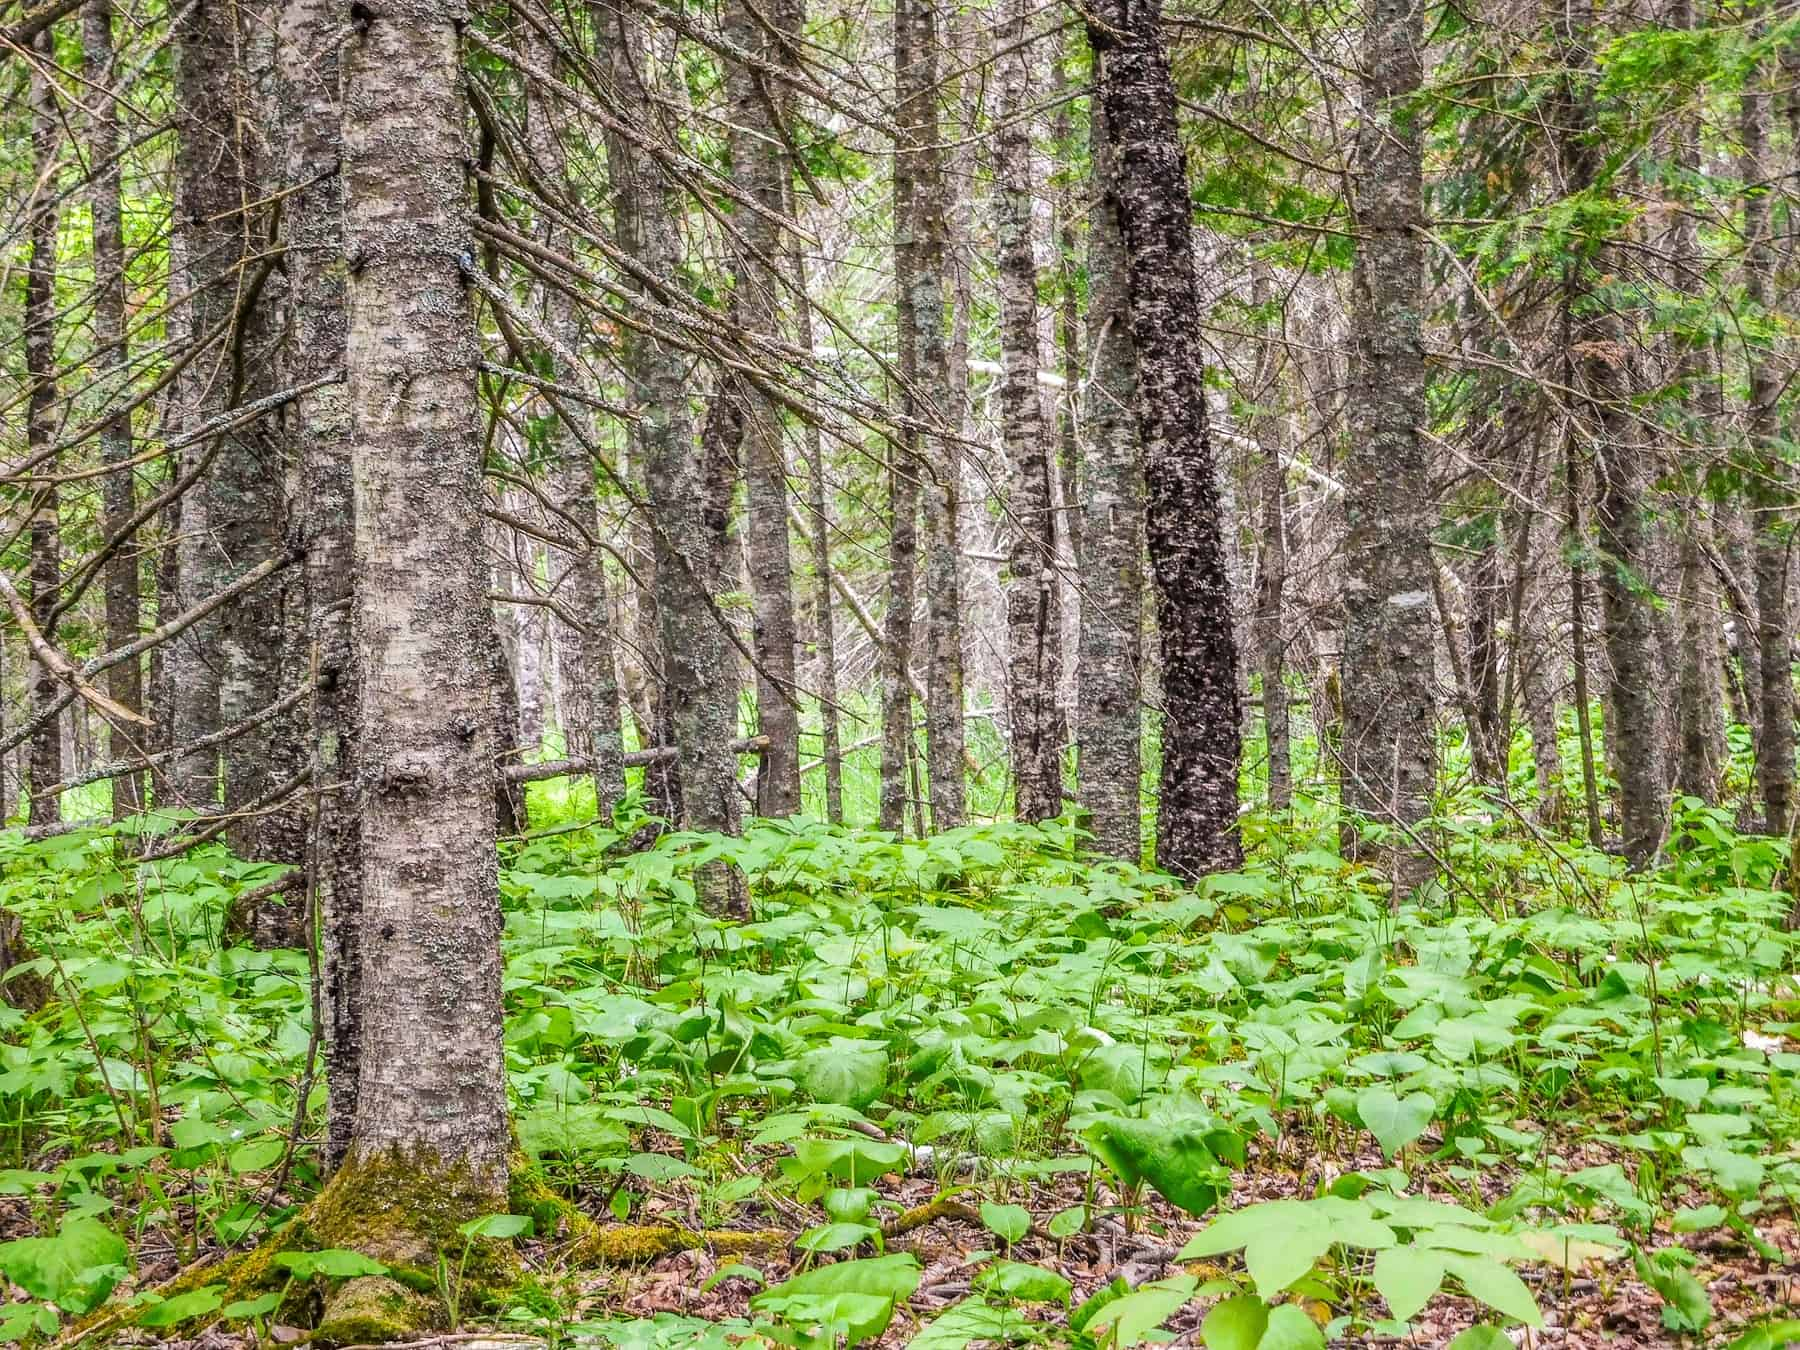 Be surrounded by mature trees at the Judge CR Magney State Park